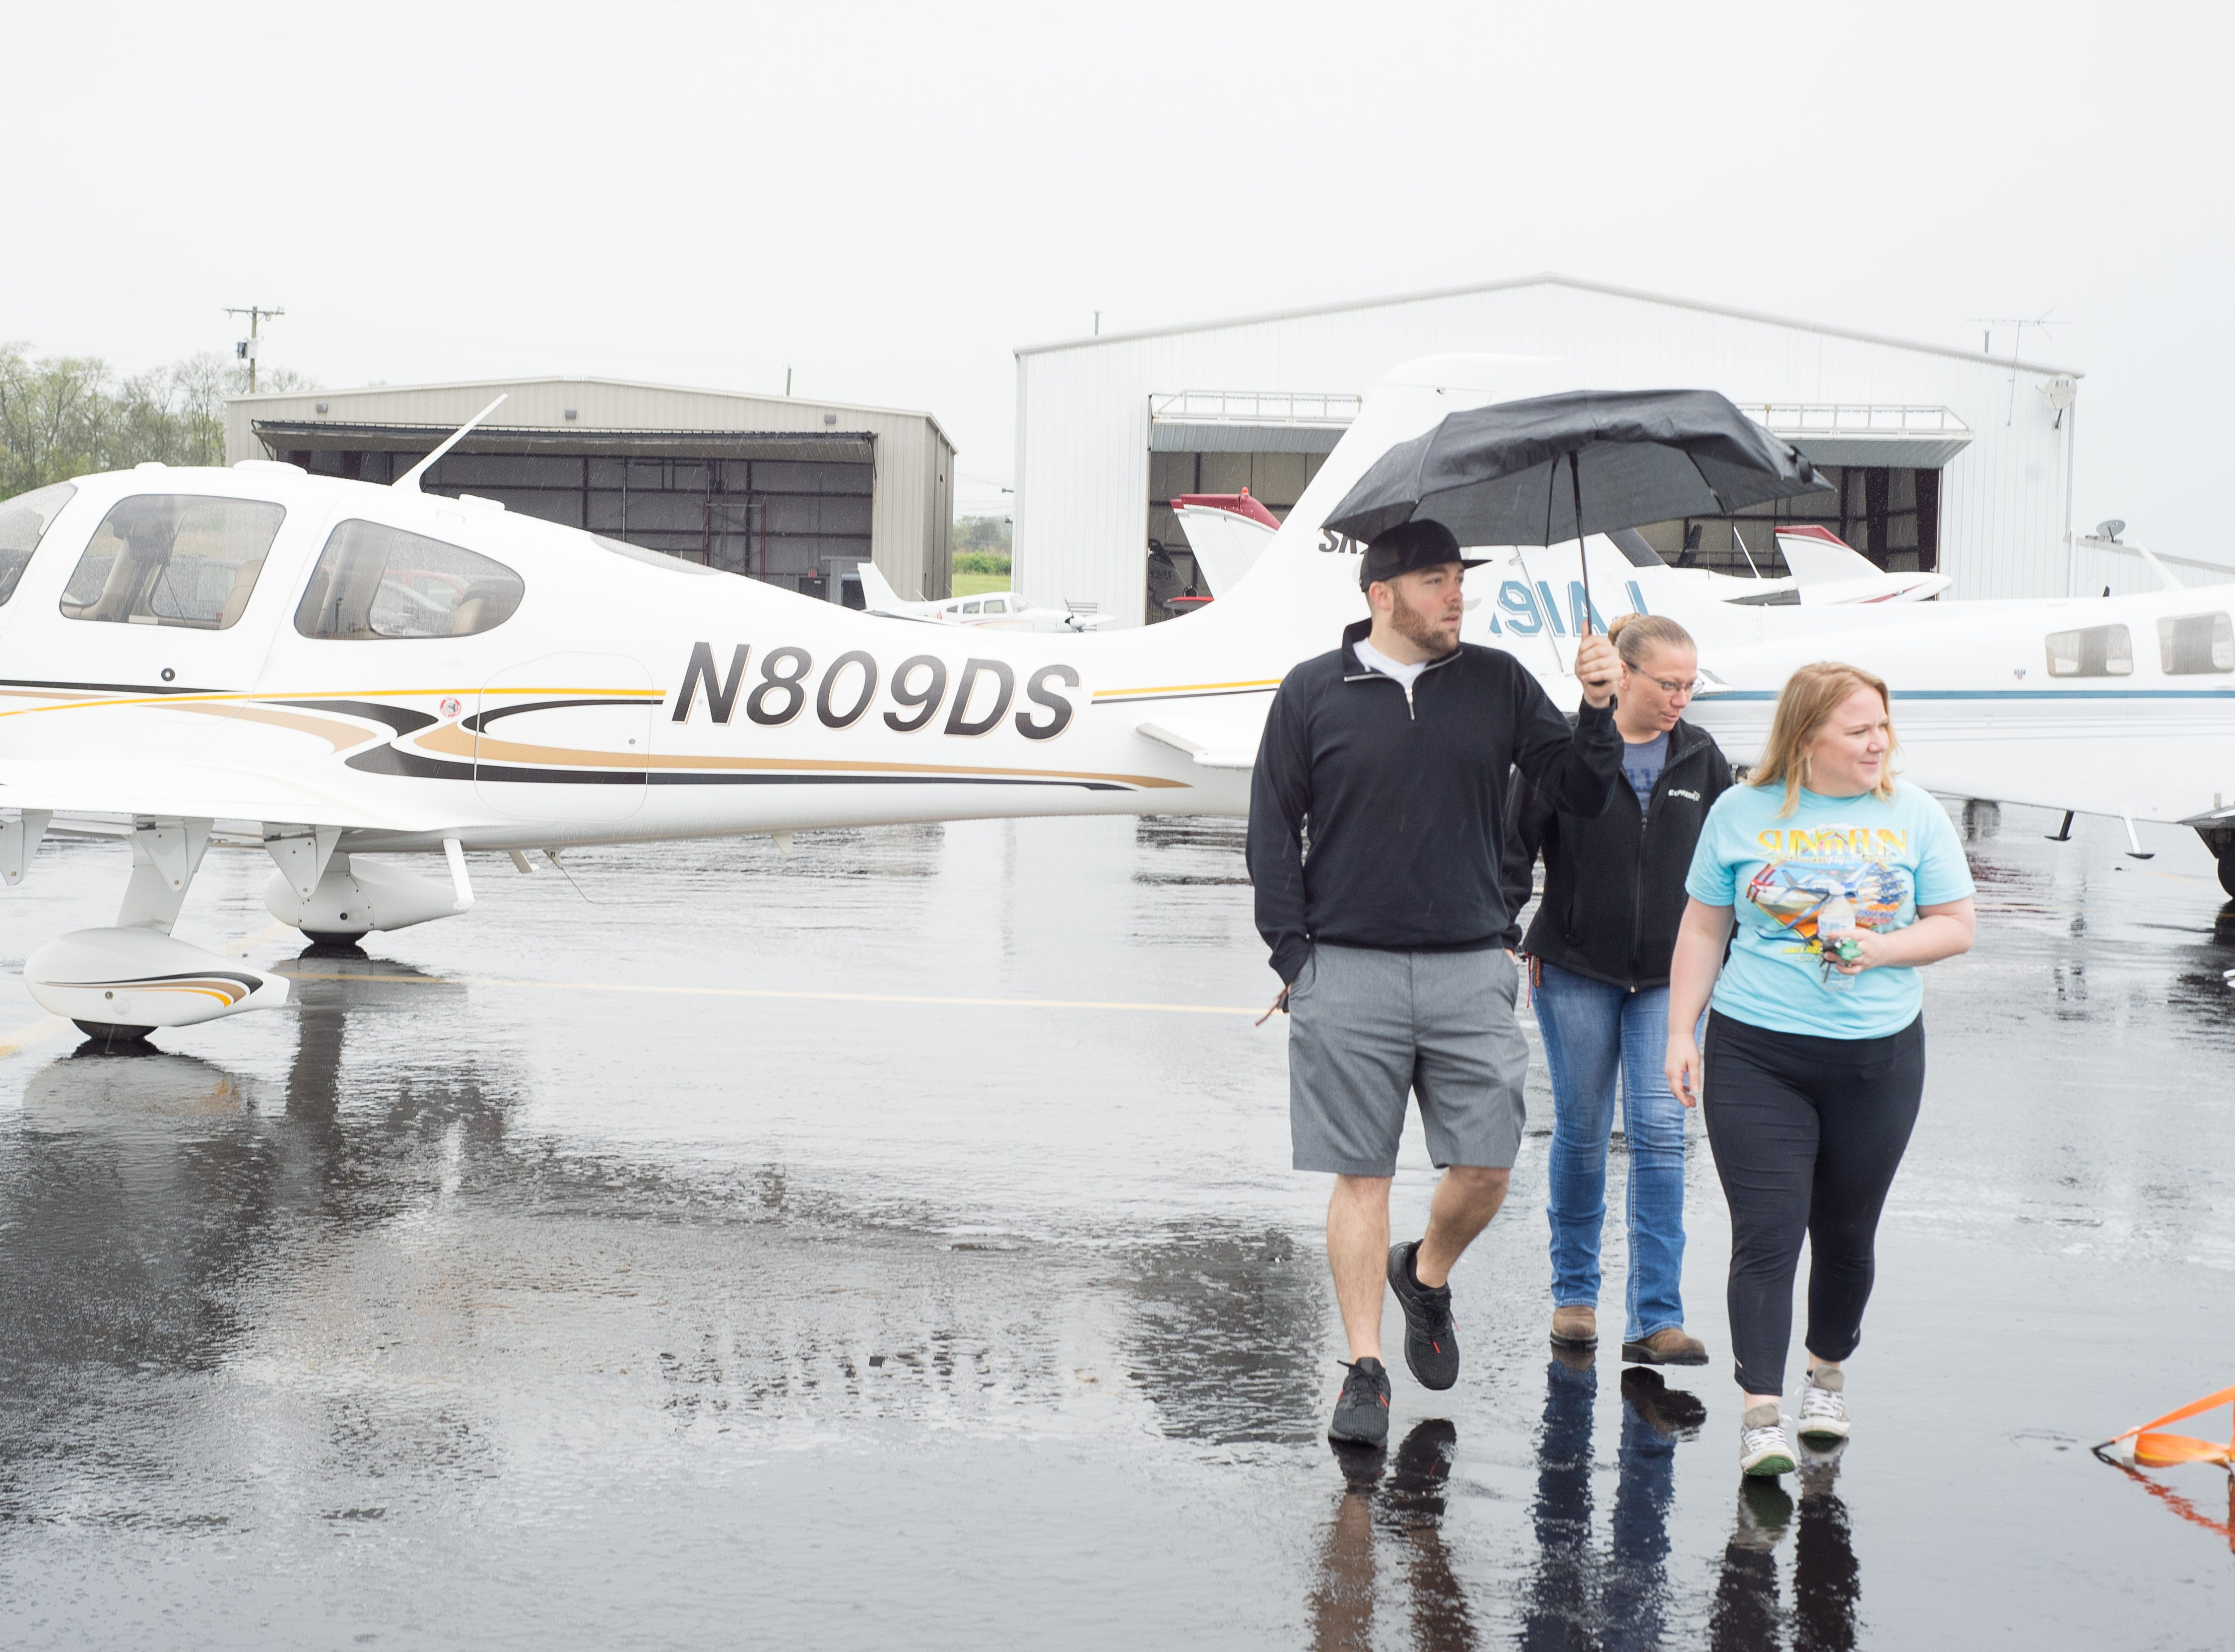 Attendees enjoyed a Fly-In Breakfast despite the rain at the Sumner County Regional Airport in Gallatin on Saturday, April 13.